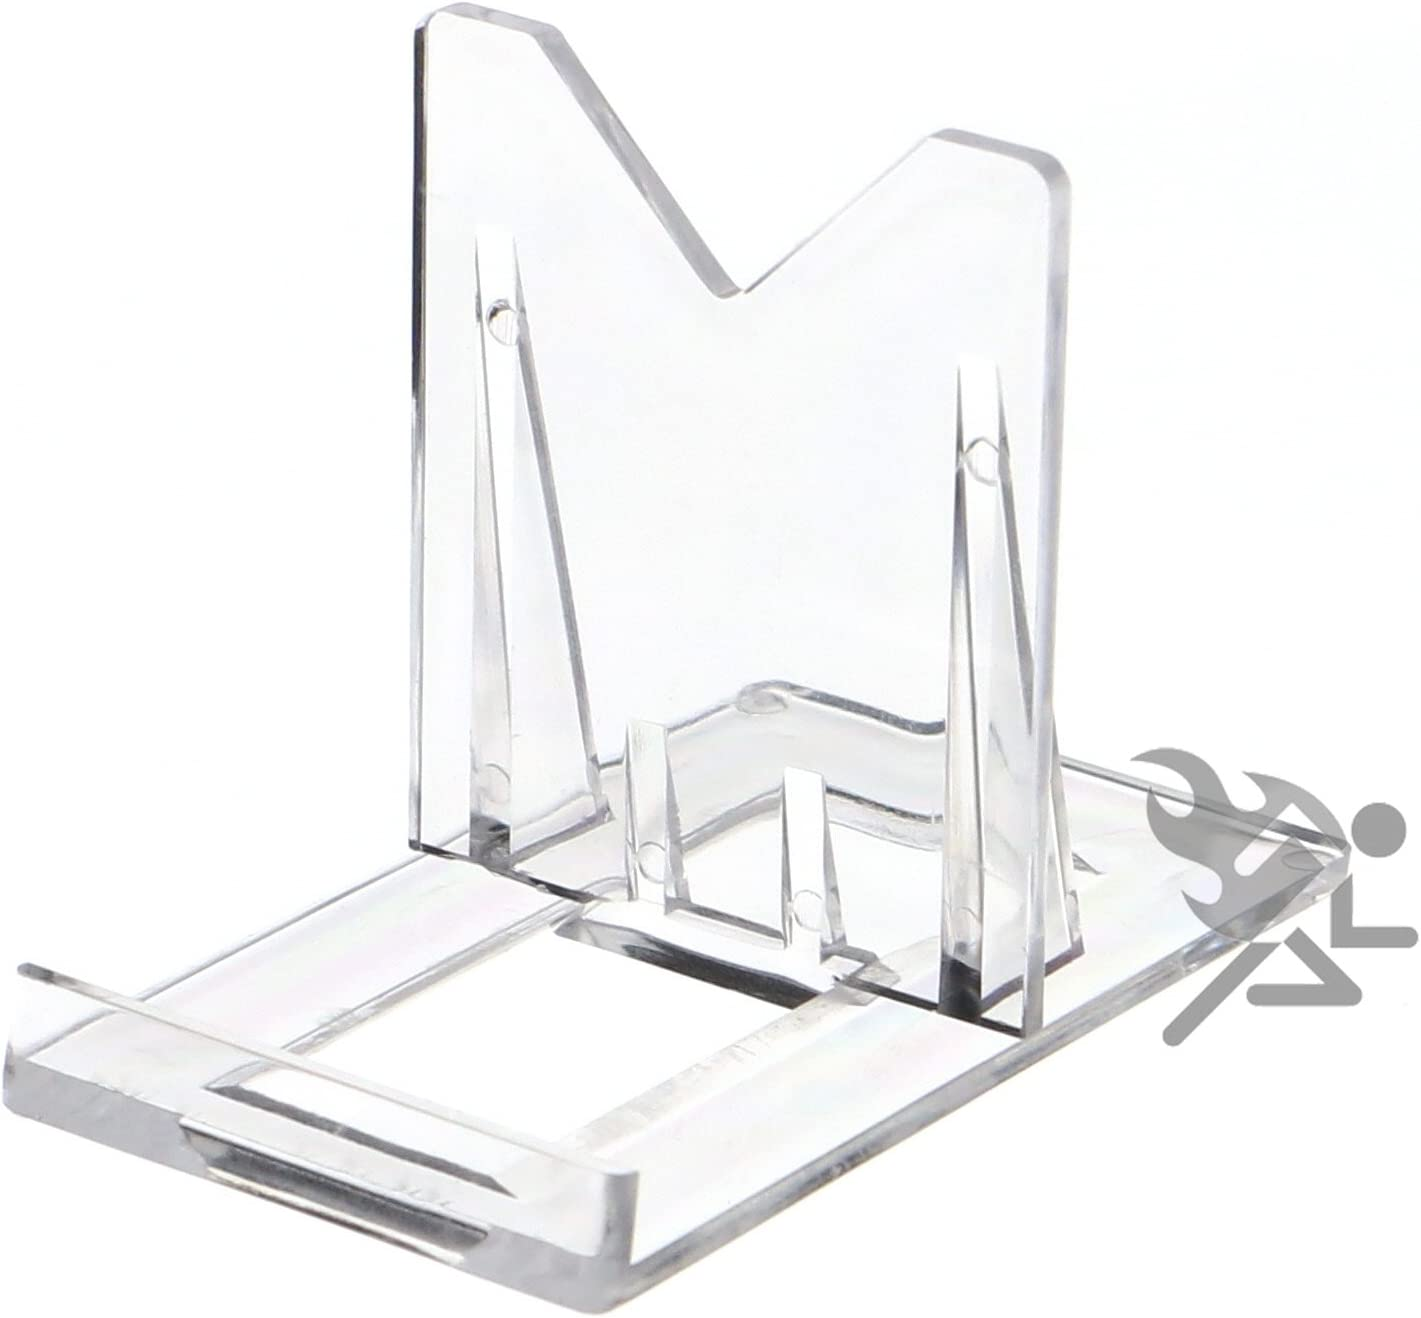 15 Pack OnFireGuy 2 Two Part Adjustable Clear Acrylic Plastic Display Stand Easel for Mineral Fossil Slice Agate Slab Geode Seashell